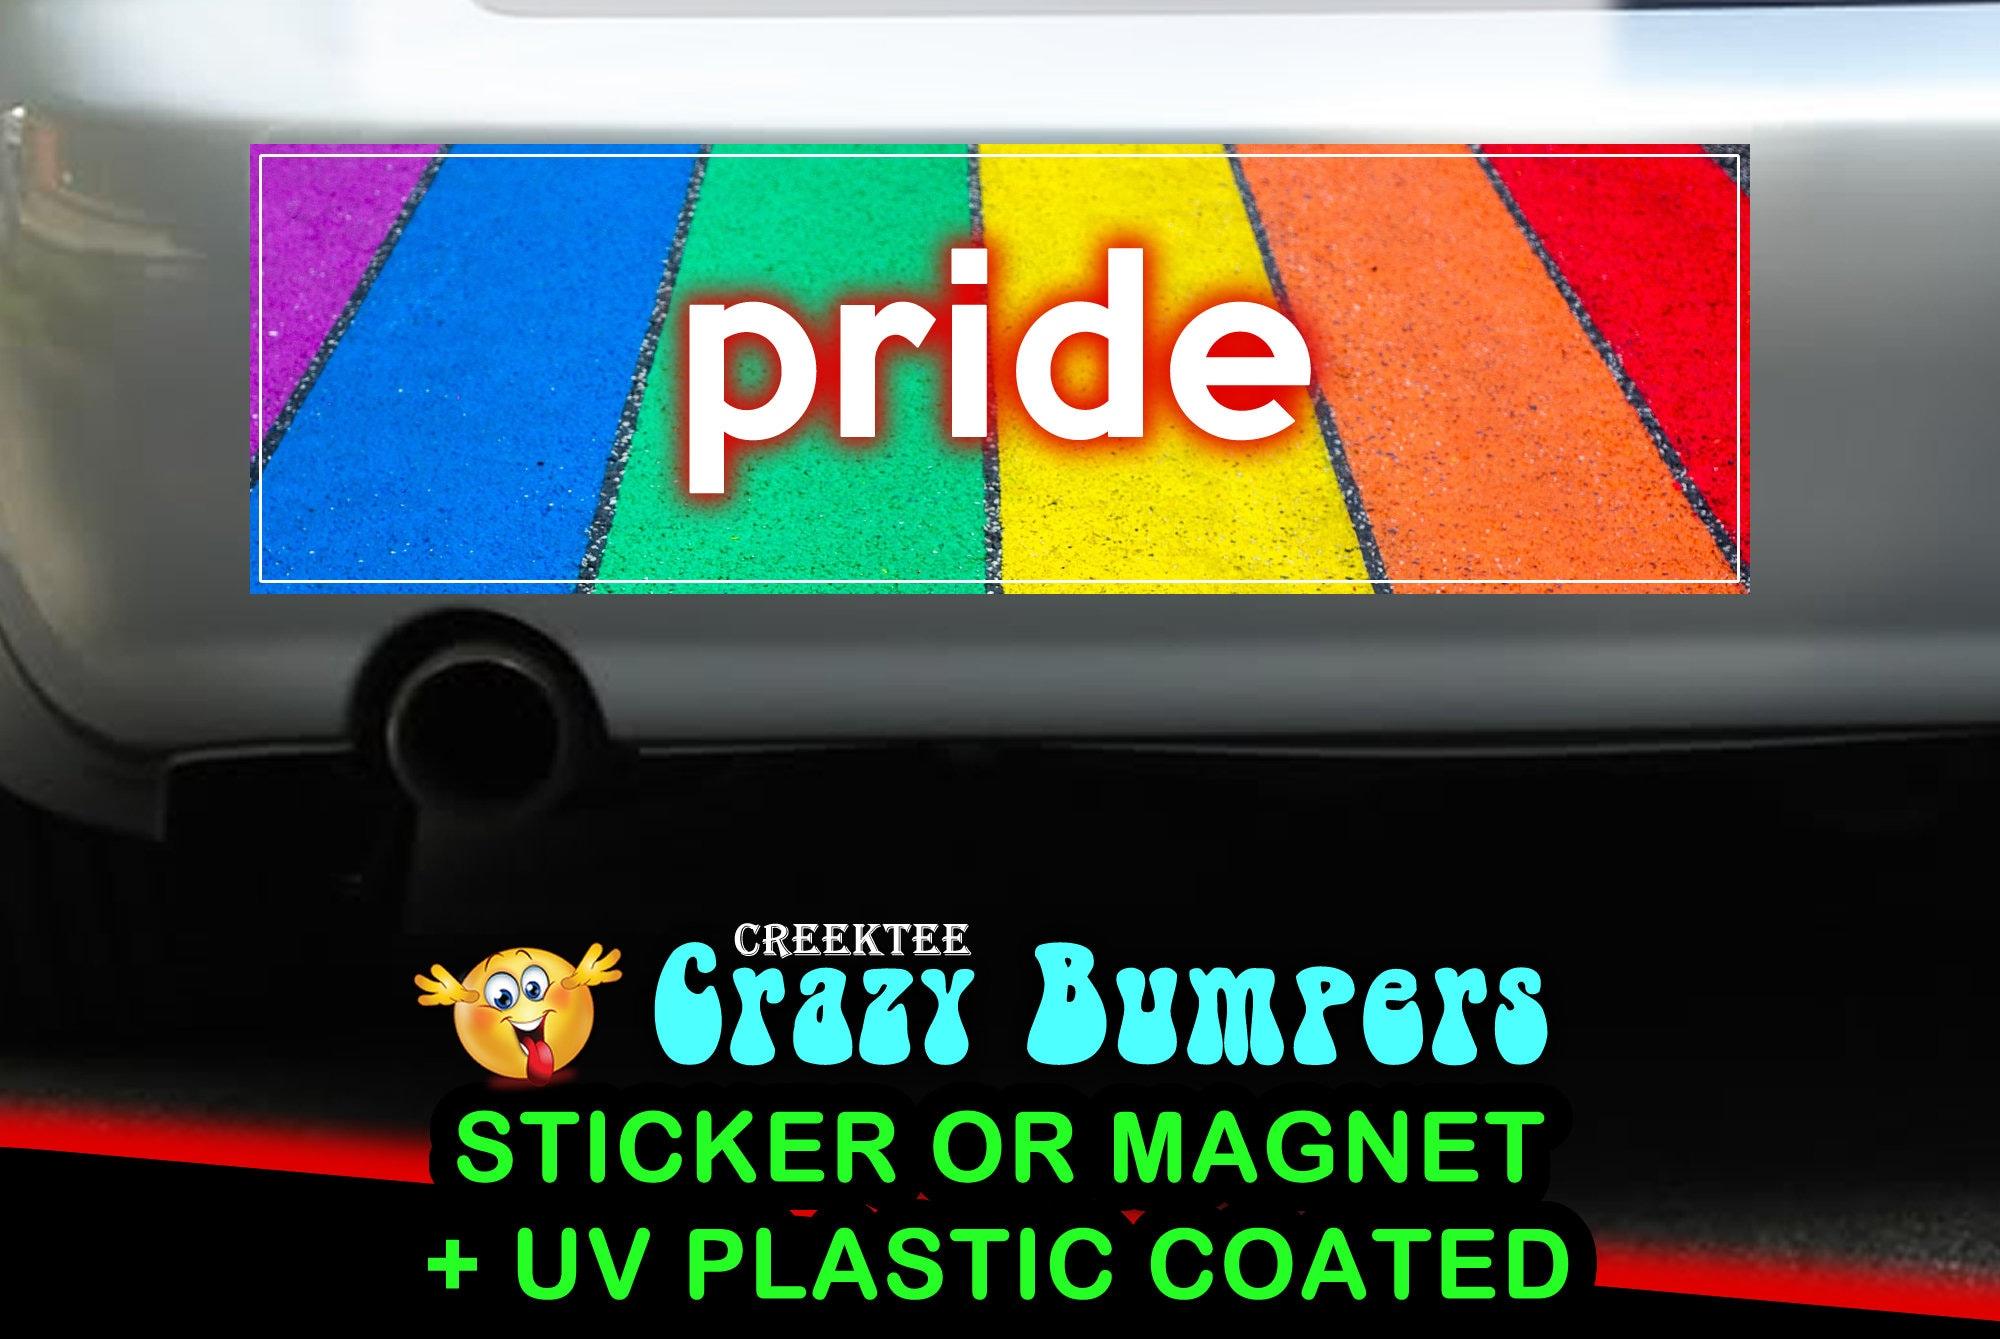 CAD$9.74 - Rainbow Pride Sidewalk 10 x 3 Bumper Sticker or Magnetic Bumper Sticker Available